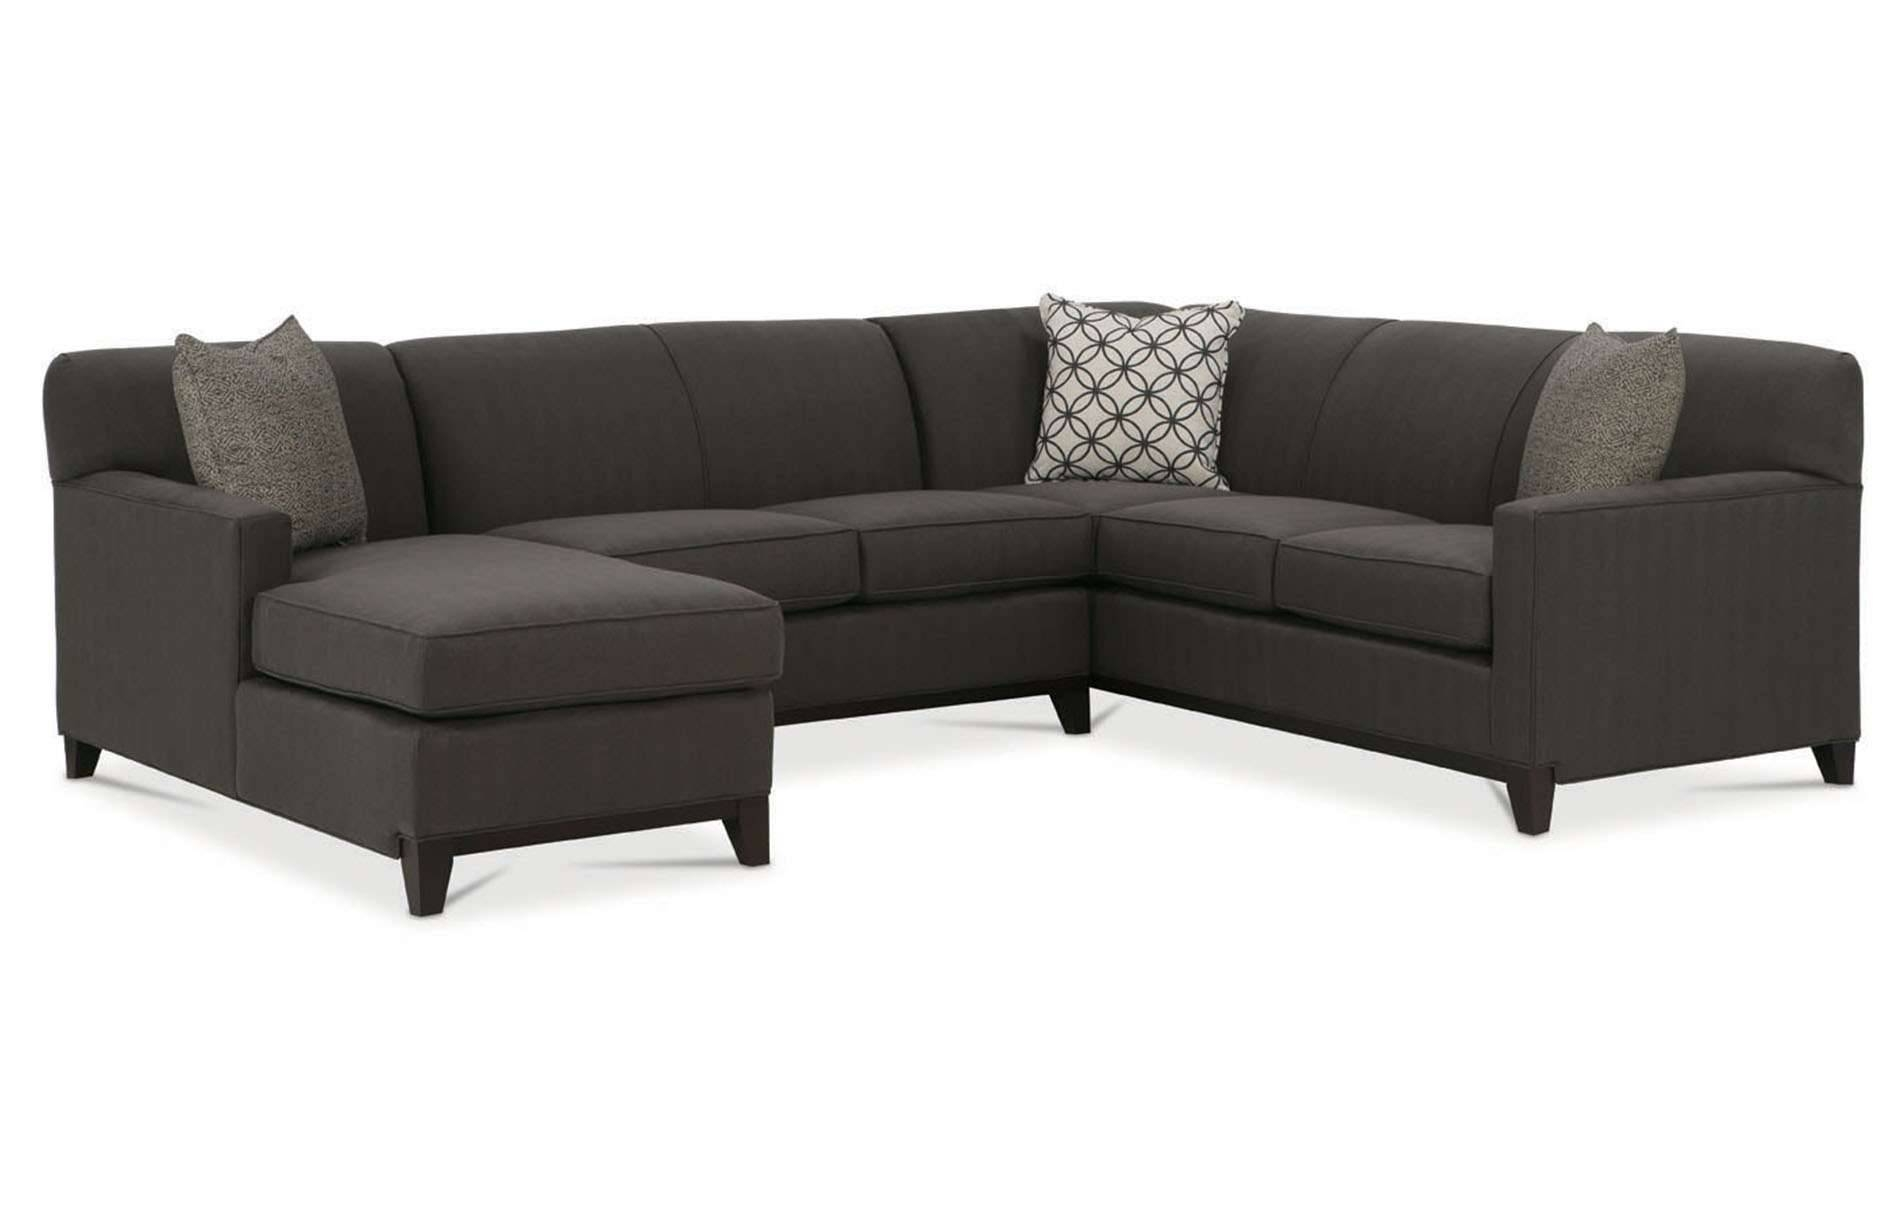 angled sectionals sofas best affordable leather top 30 of sofa sectional